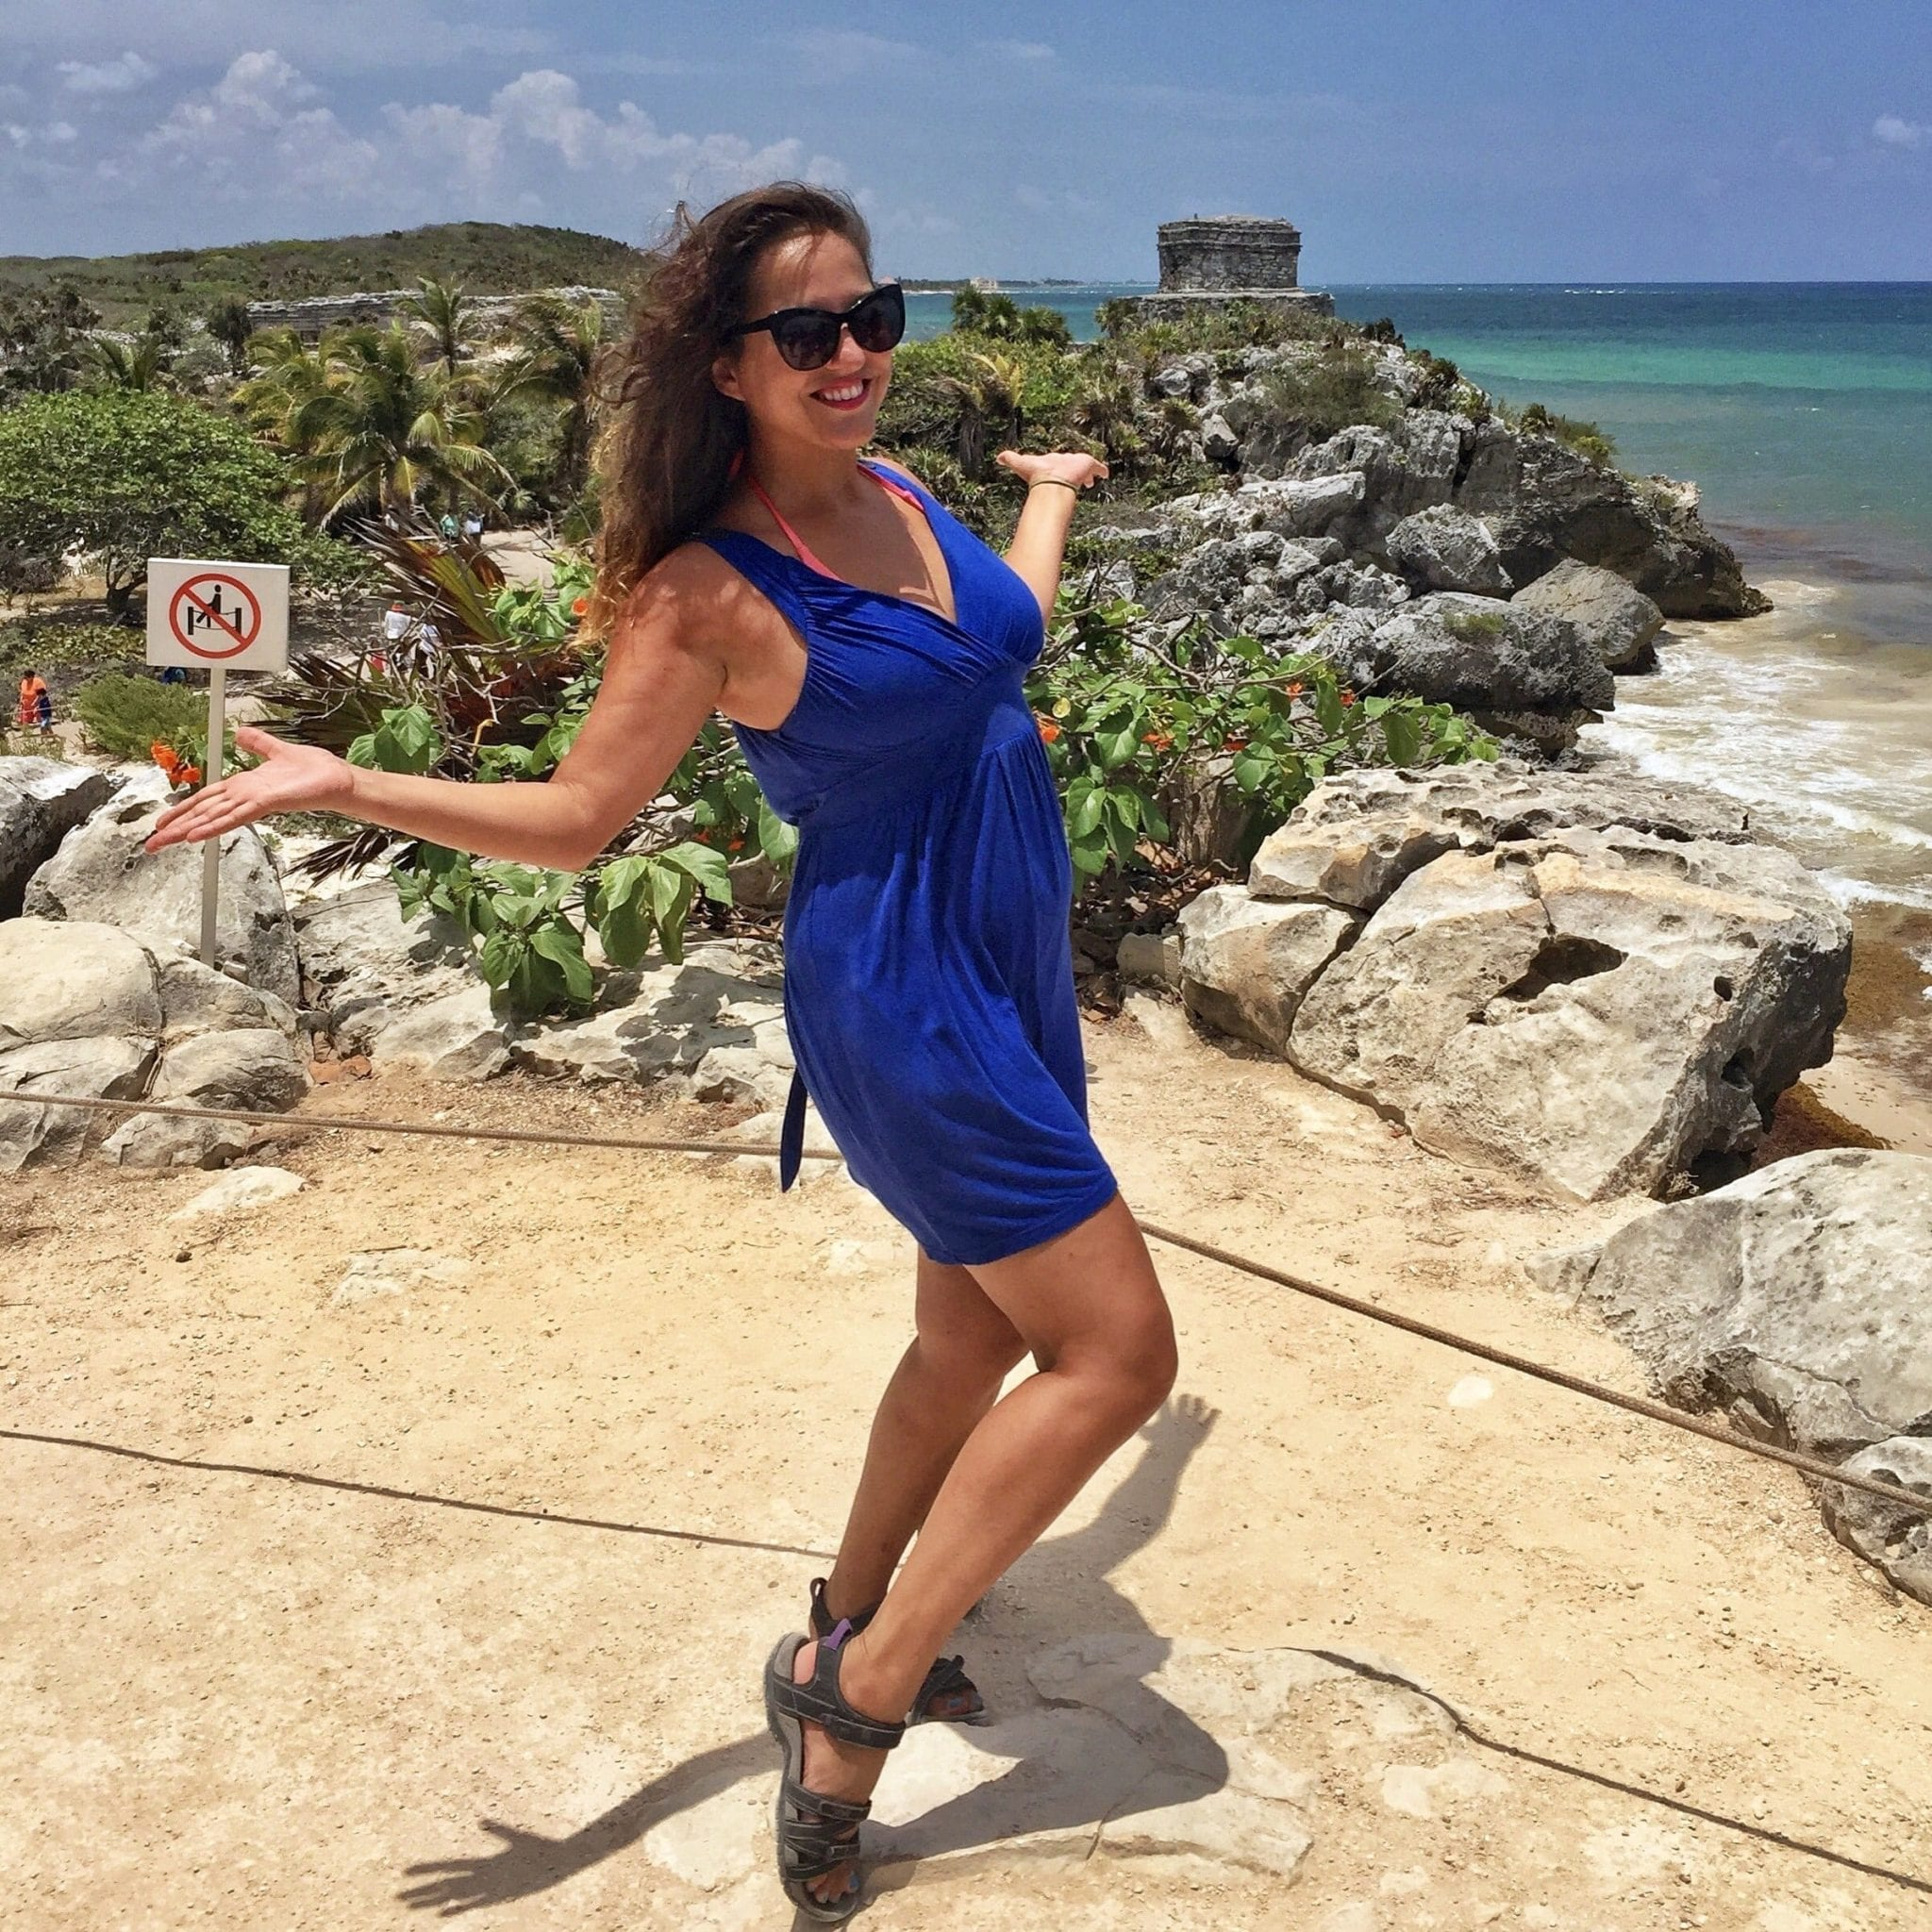 d2a7f348fe39 Solo Female Travel in Mexico - Is it Safe? - Adventurous Kate ...